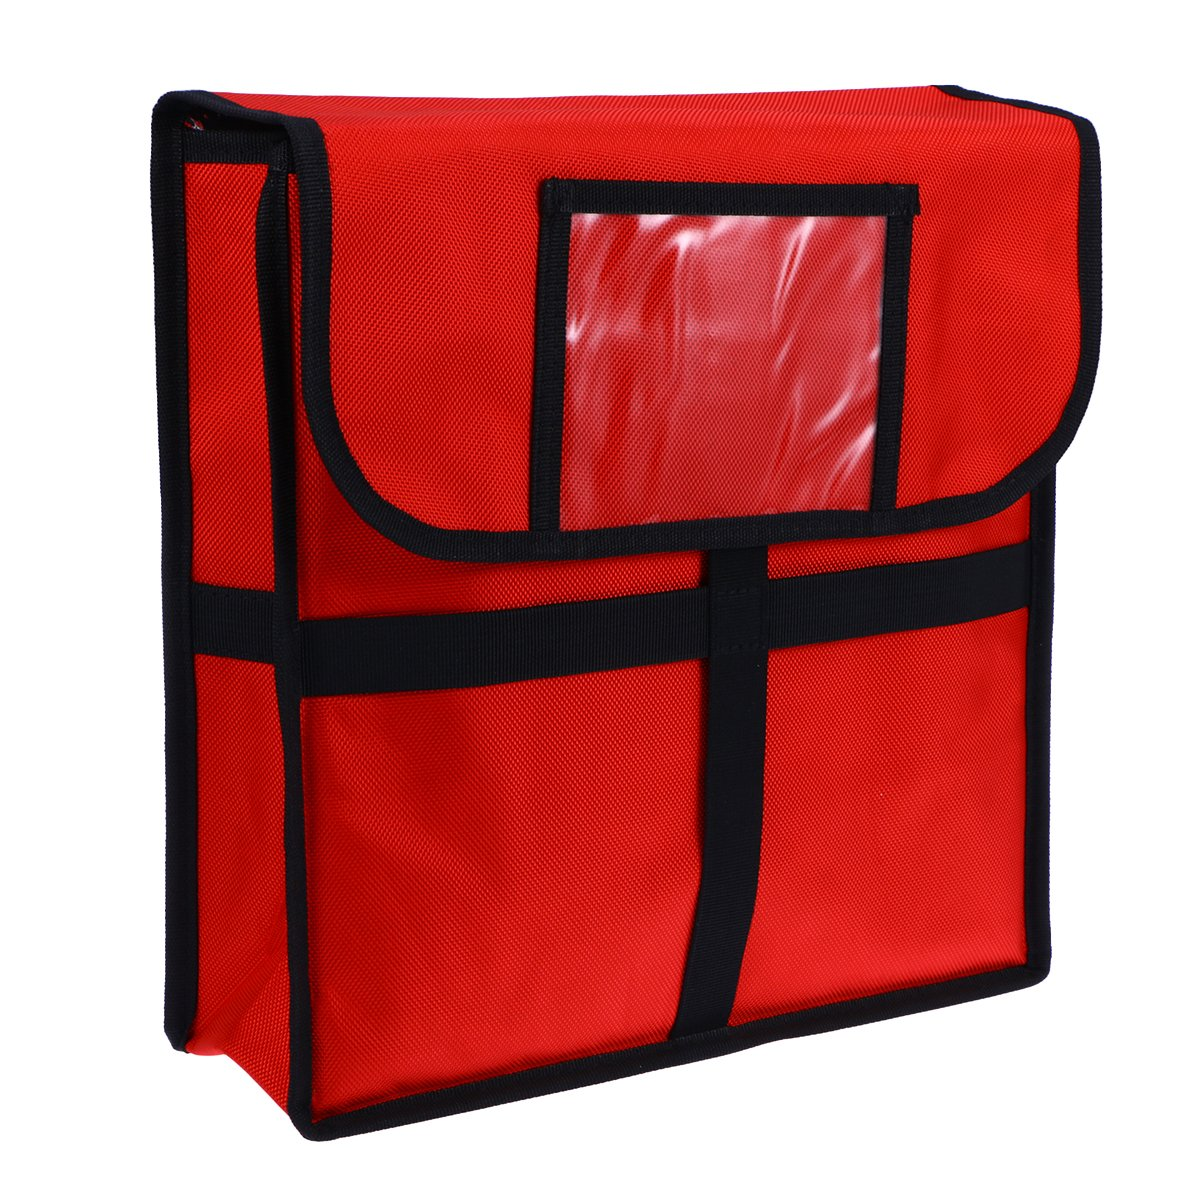 BESTOMZ Insulated Pizza Food Delivery Bag